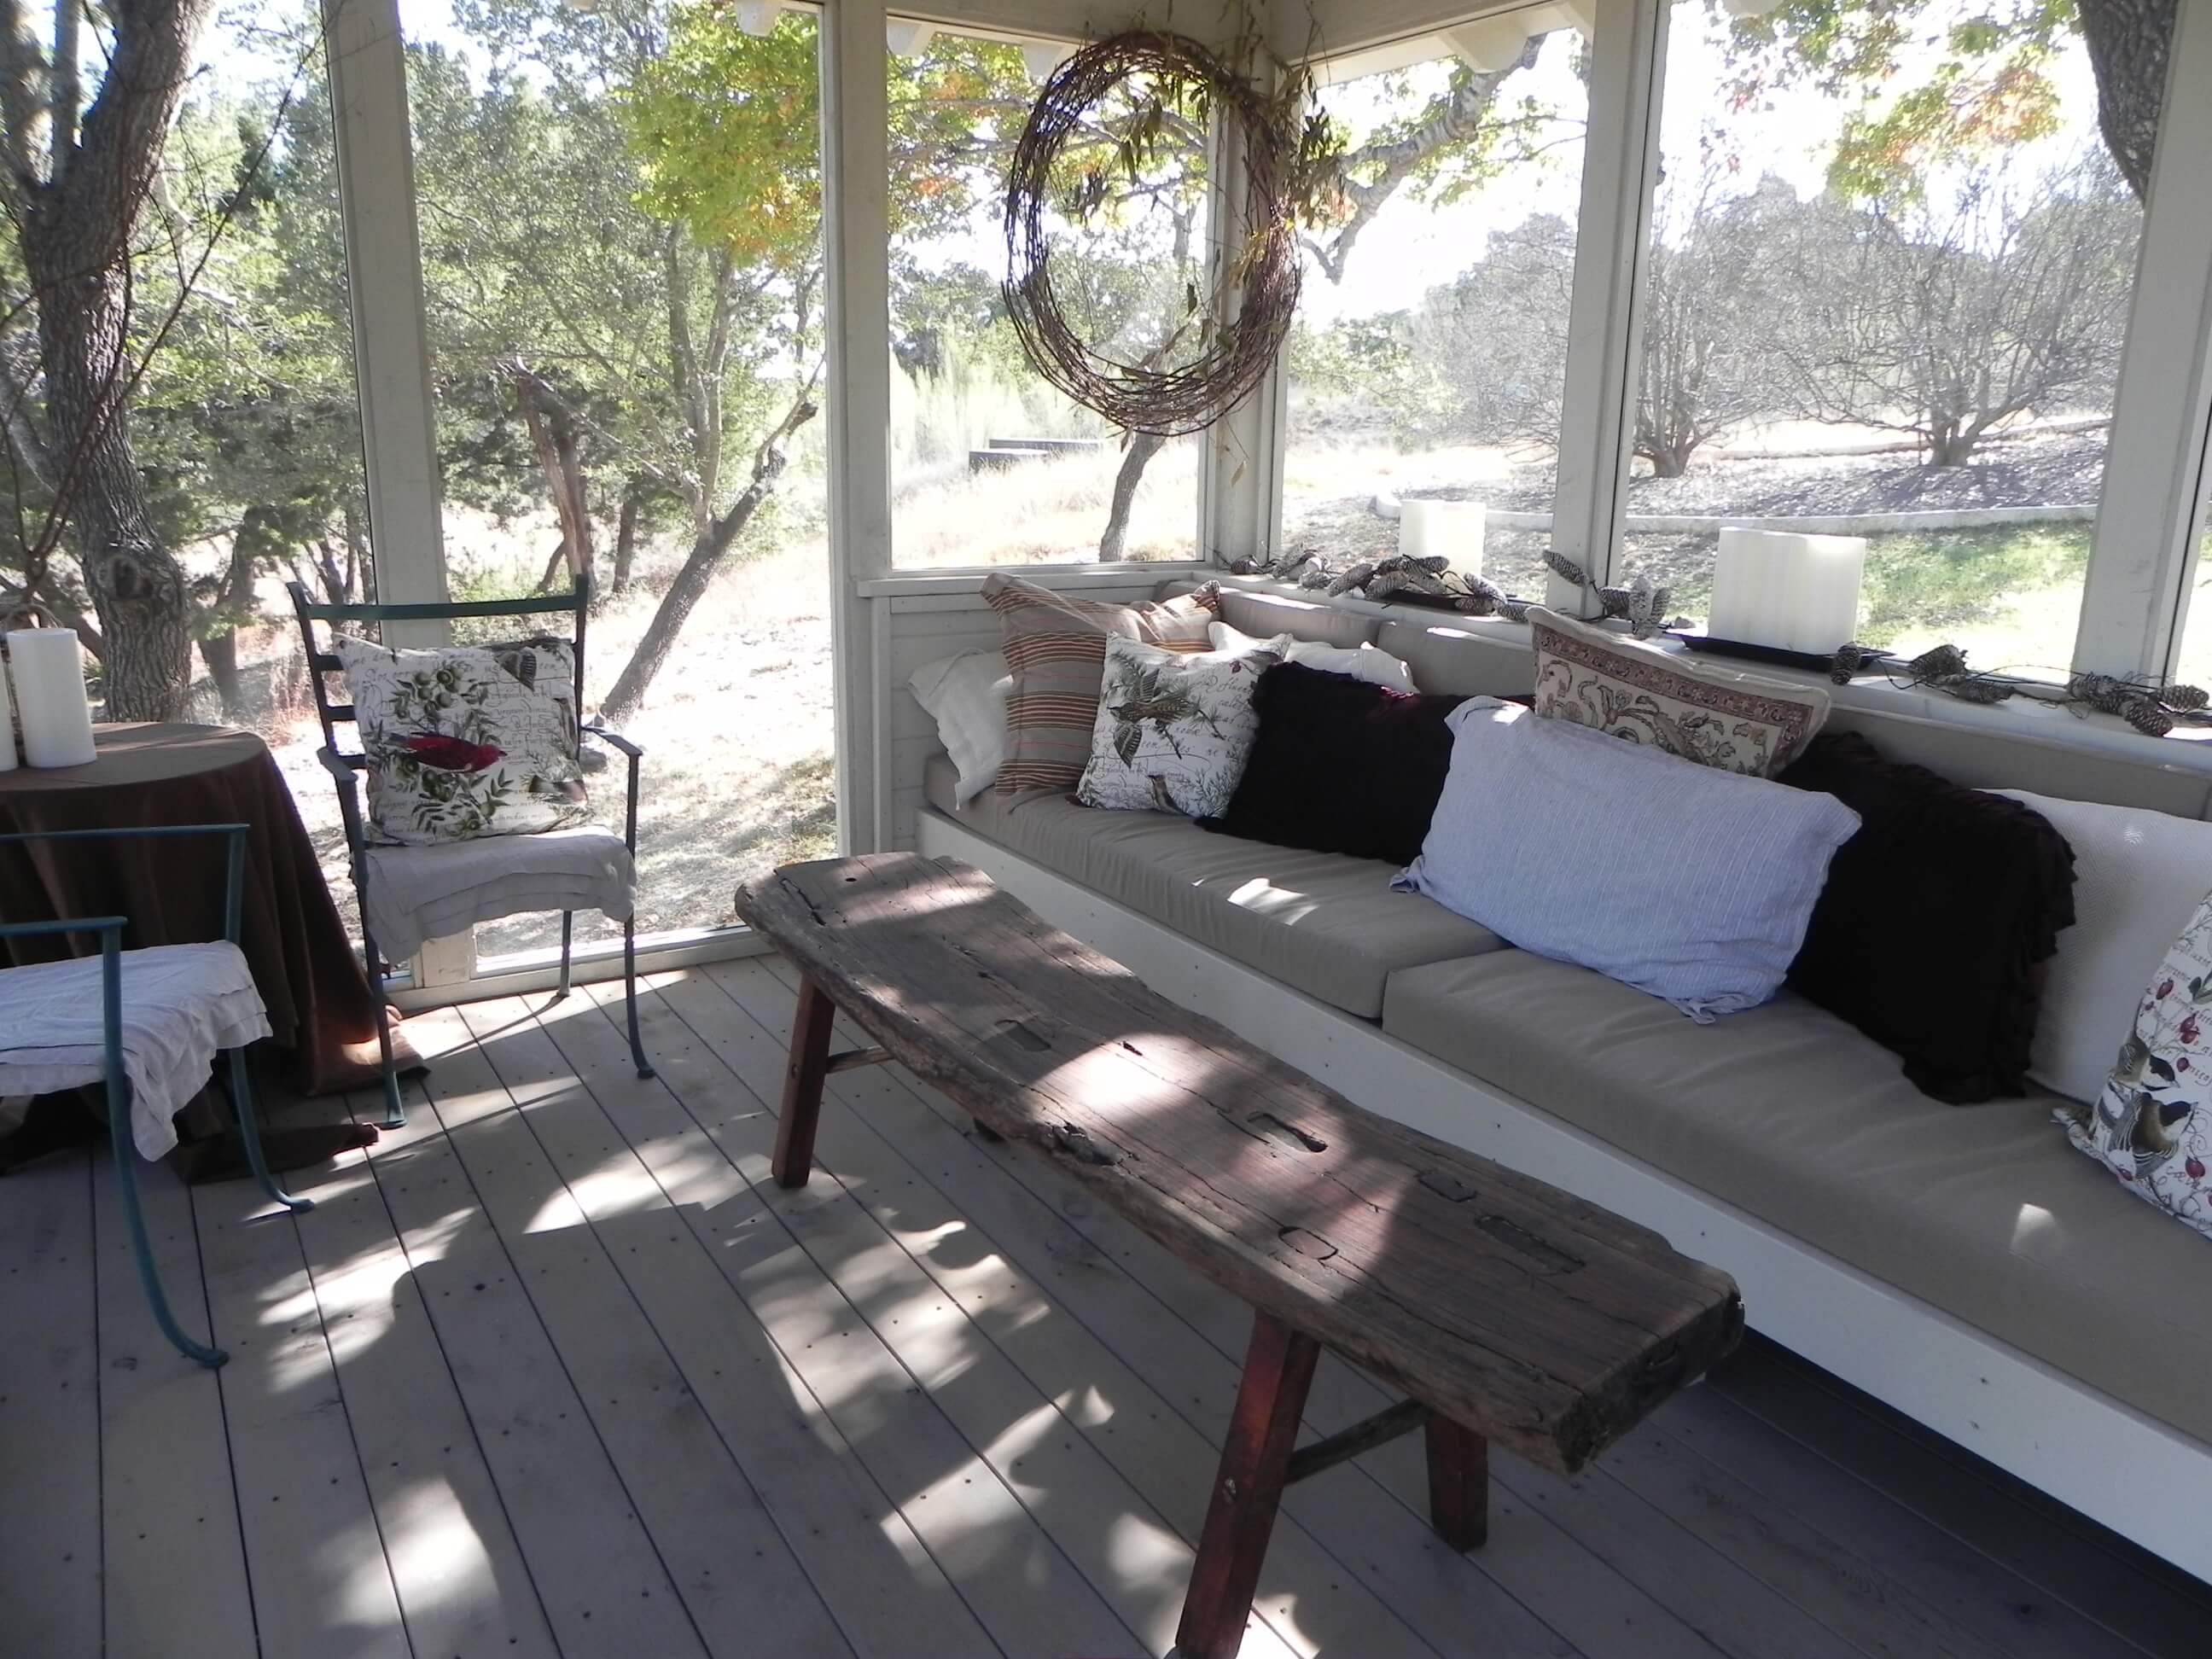 Backyard screened porch